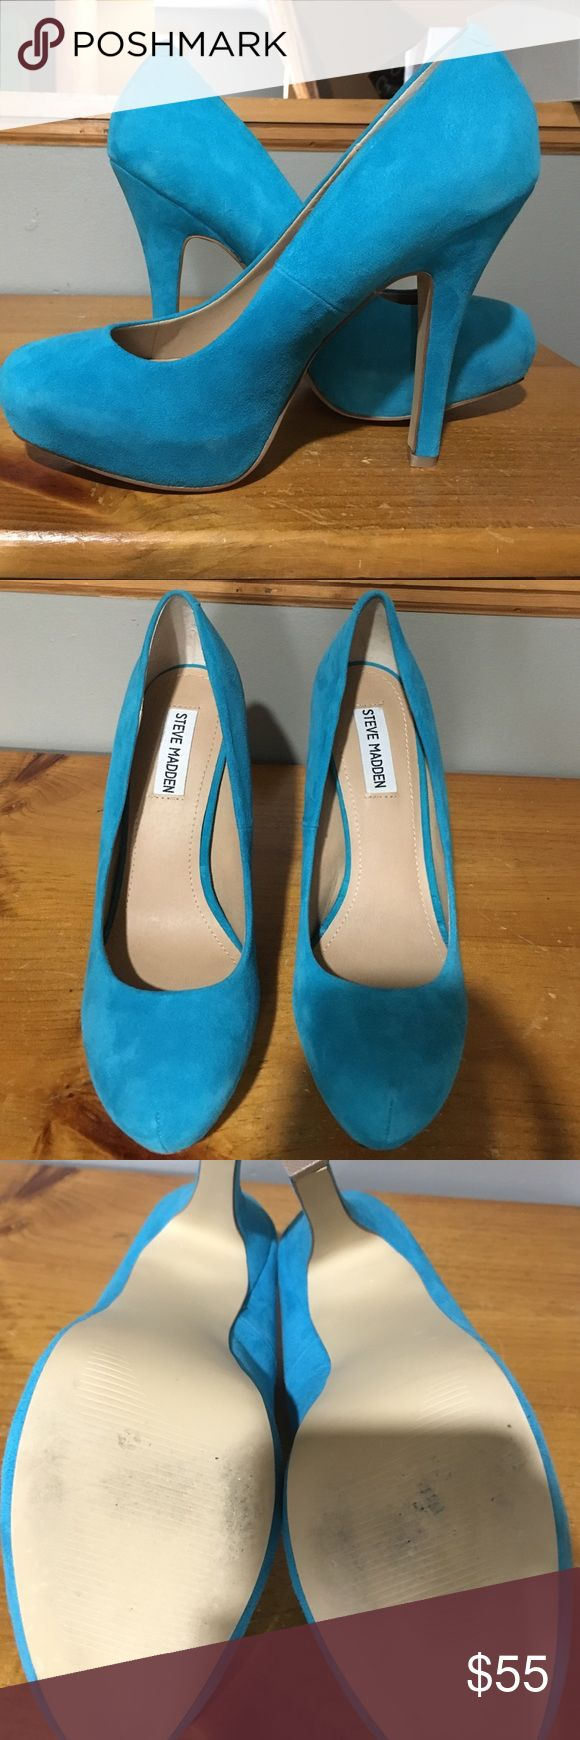 "Blue Suede Steve Madden pumps Size 8.5. suede pumps. Steve Madden ""Traisie"". Heel is approximately 4.25 inches with hidden platform in front of the shoe. Worn once, soles in great shape. Blue is like an aqua, making them a great summer or spring shoe. Described as ""turquoise suede"" by brand. Let me know if you have any questions! Steve Madden Shoes Heels"